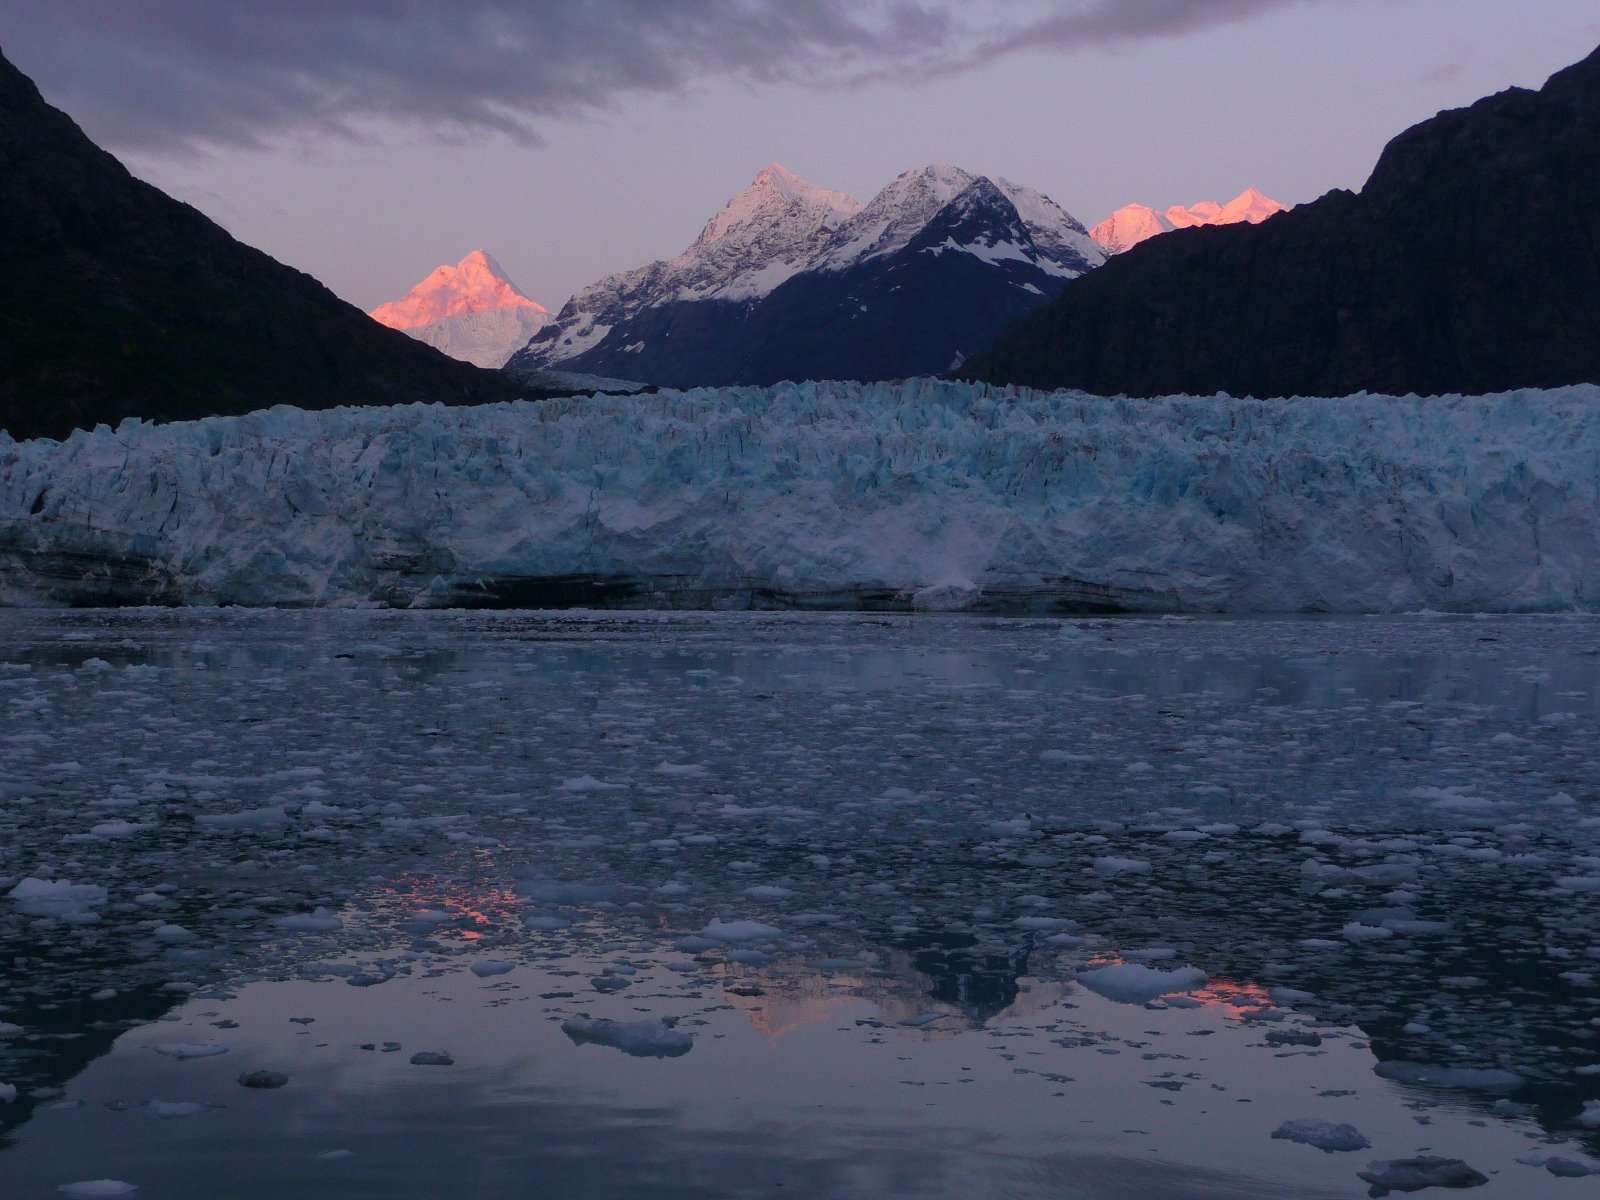 Soft sunset hues light the mountains behind the glacier.